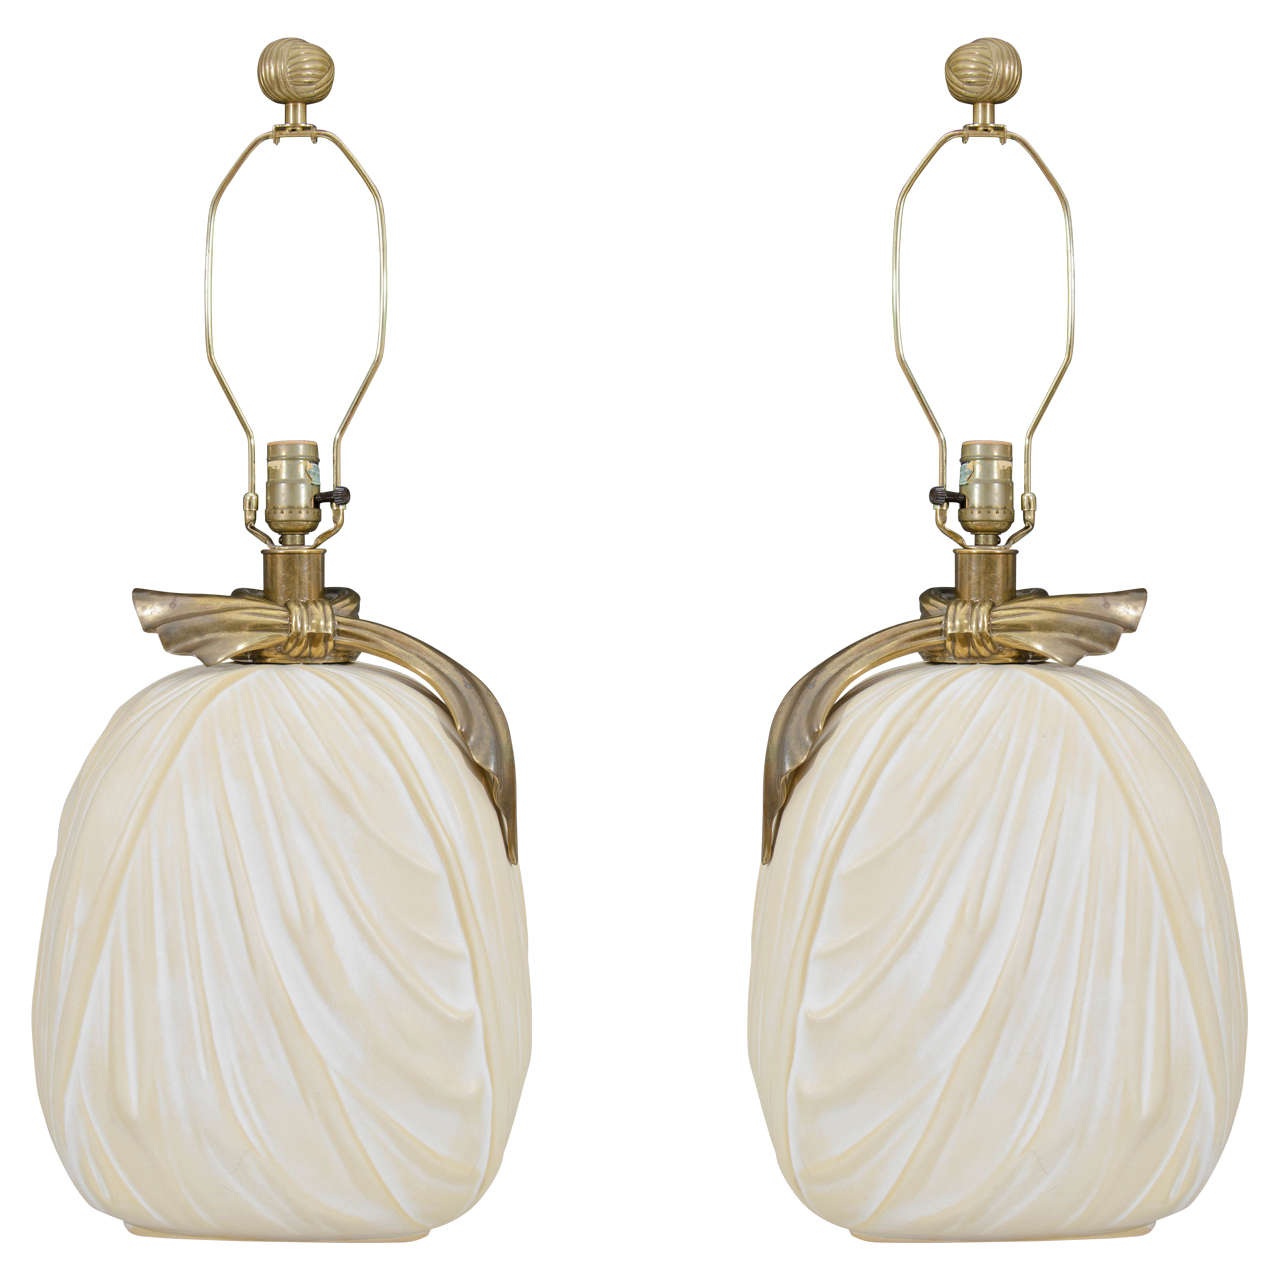 Table lamp vintage style - Vintage Pair Of Large Hollywood Regency Style Chapman Table Lamps 1